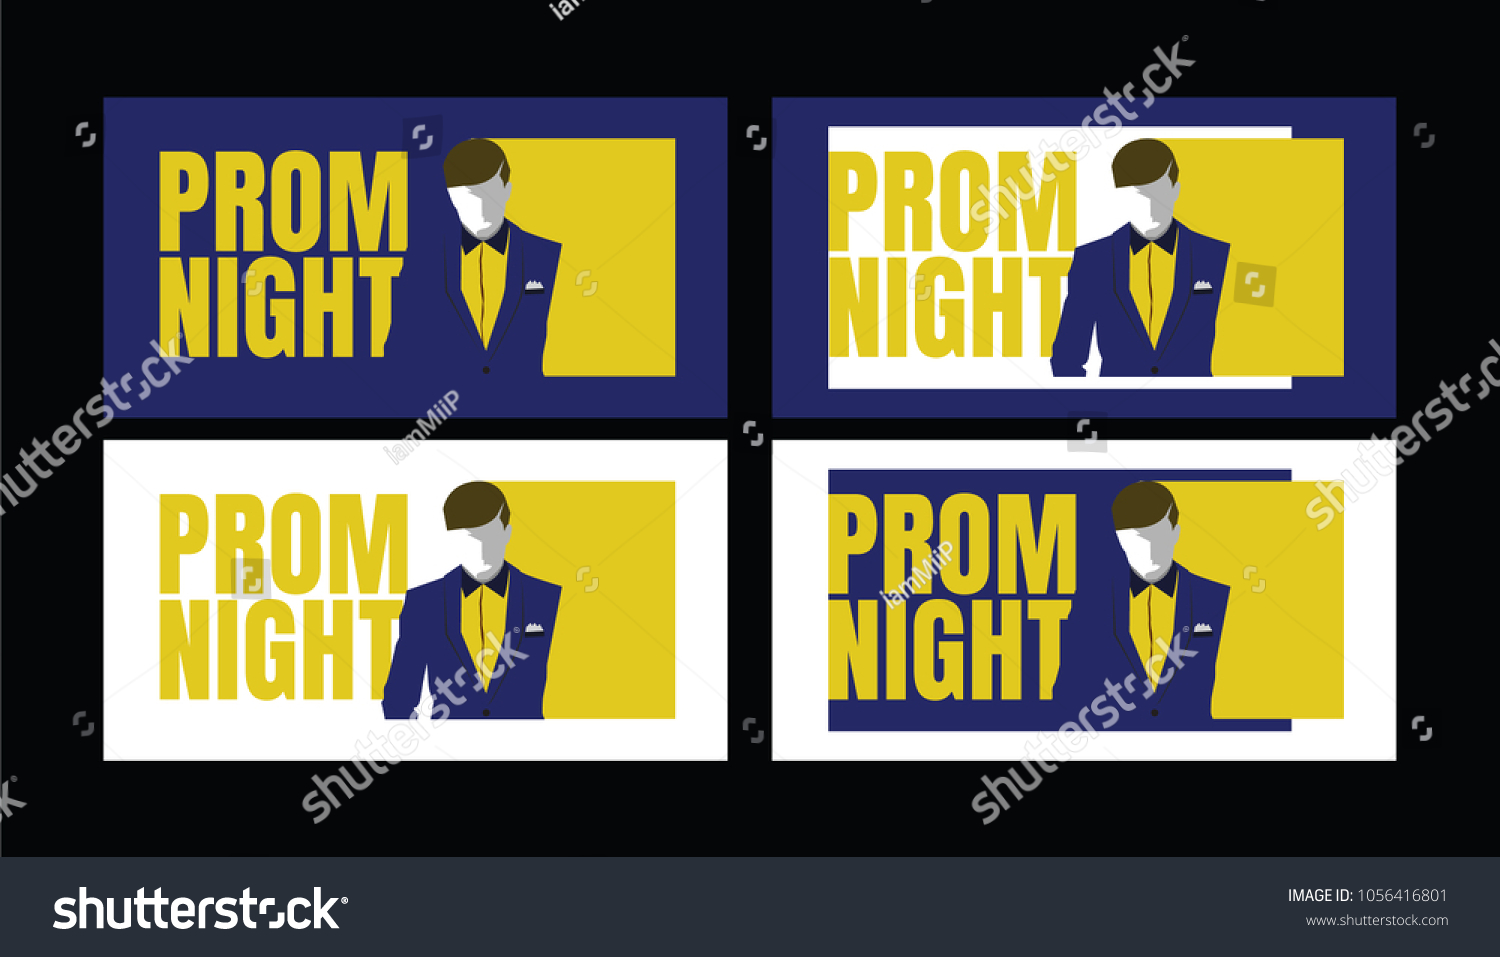 Prom night party background poster flyer stock vector 1056416801 prom night party background poster flyer stock vector 1056416801 shutterstock stopboris Choice Image